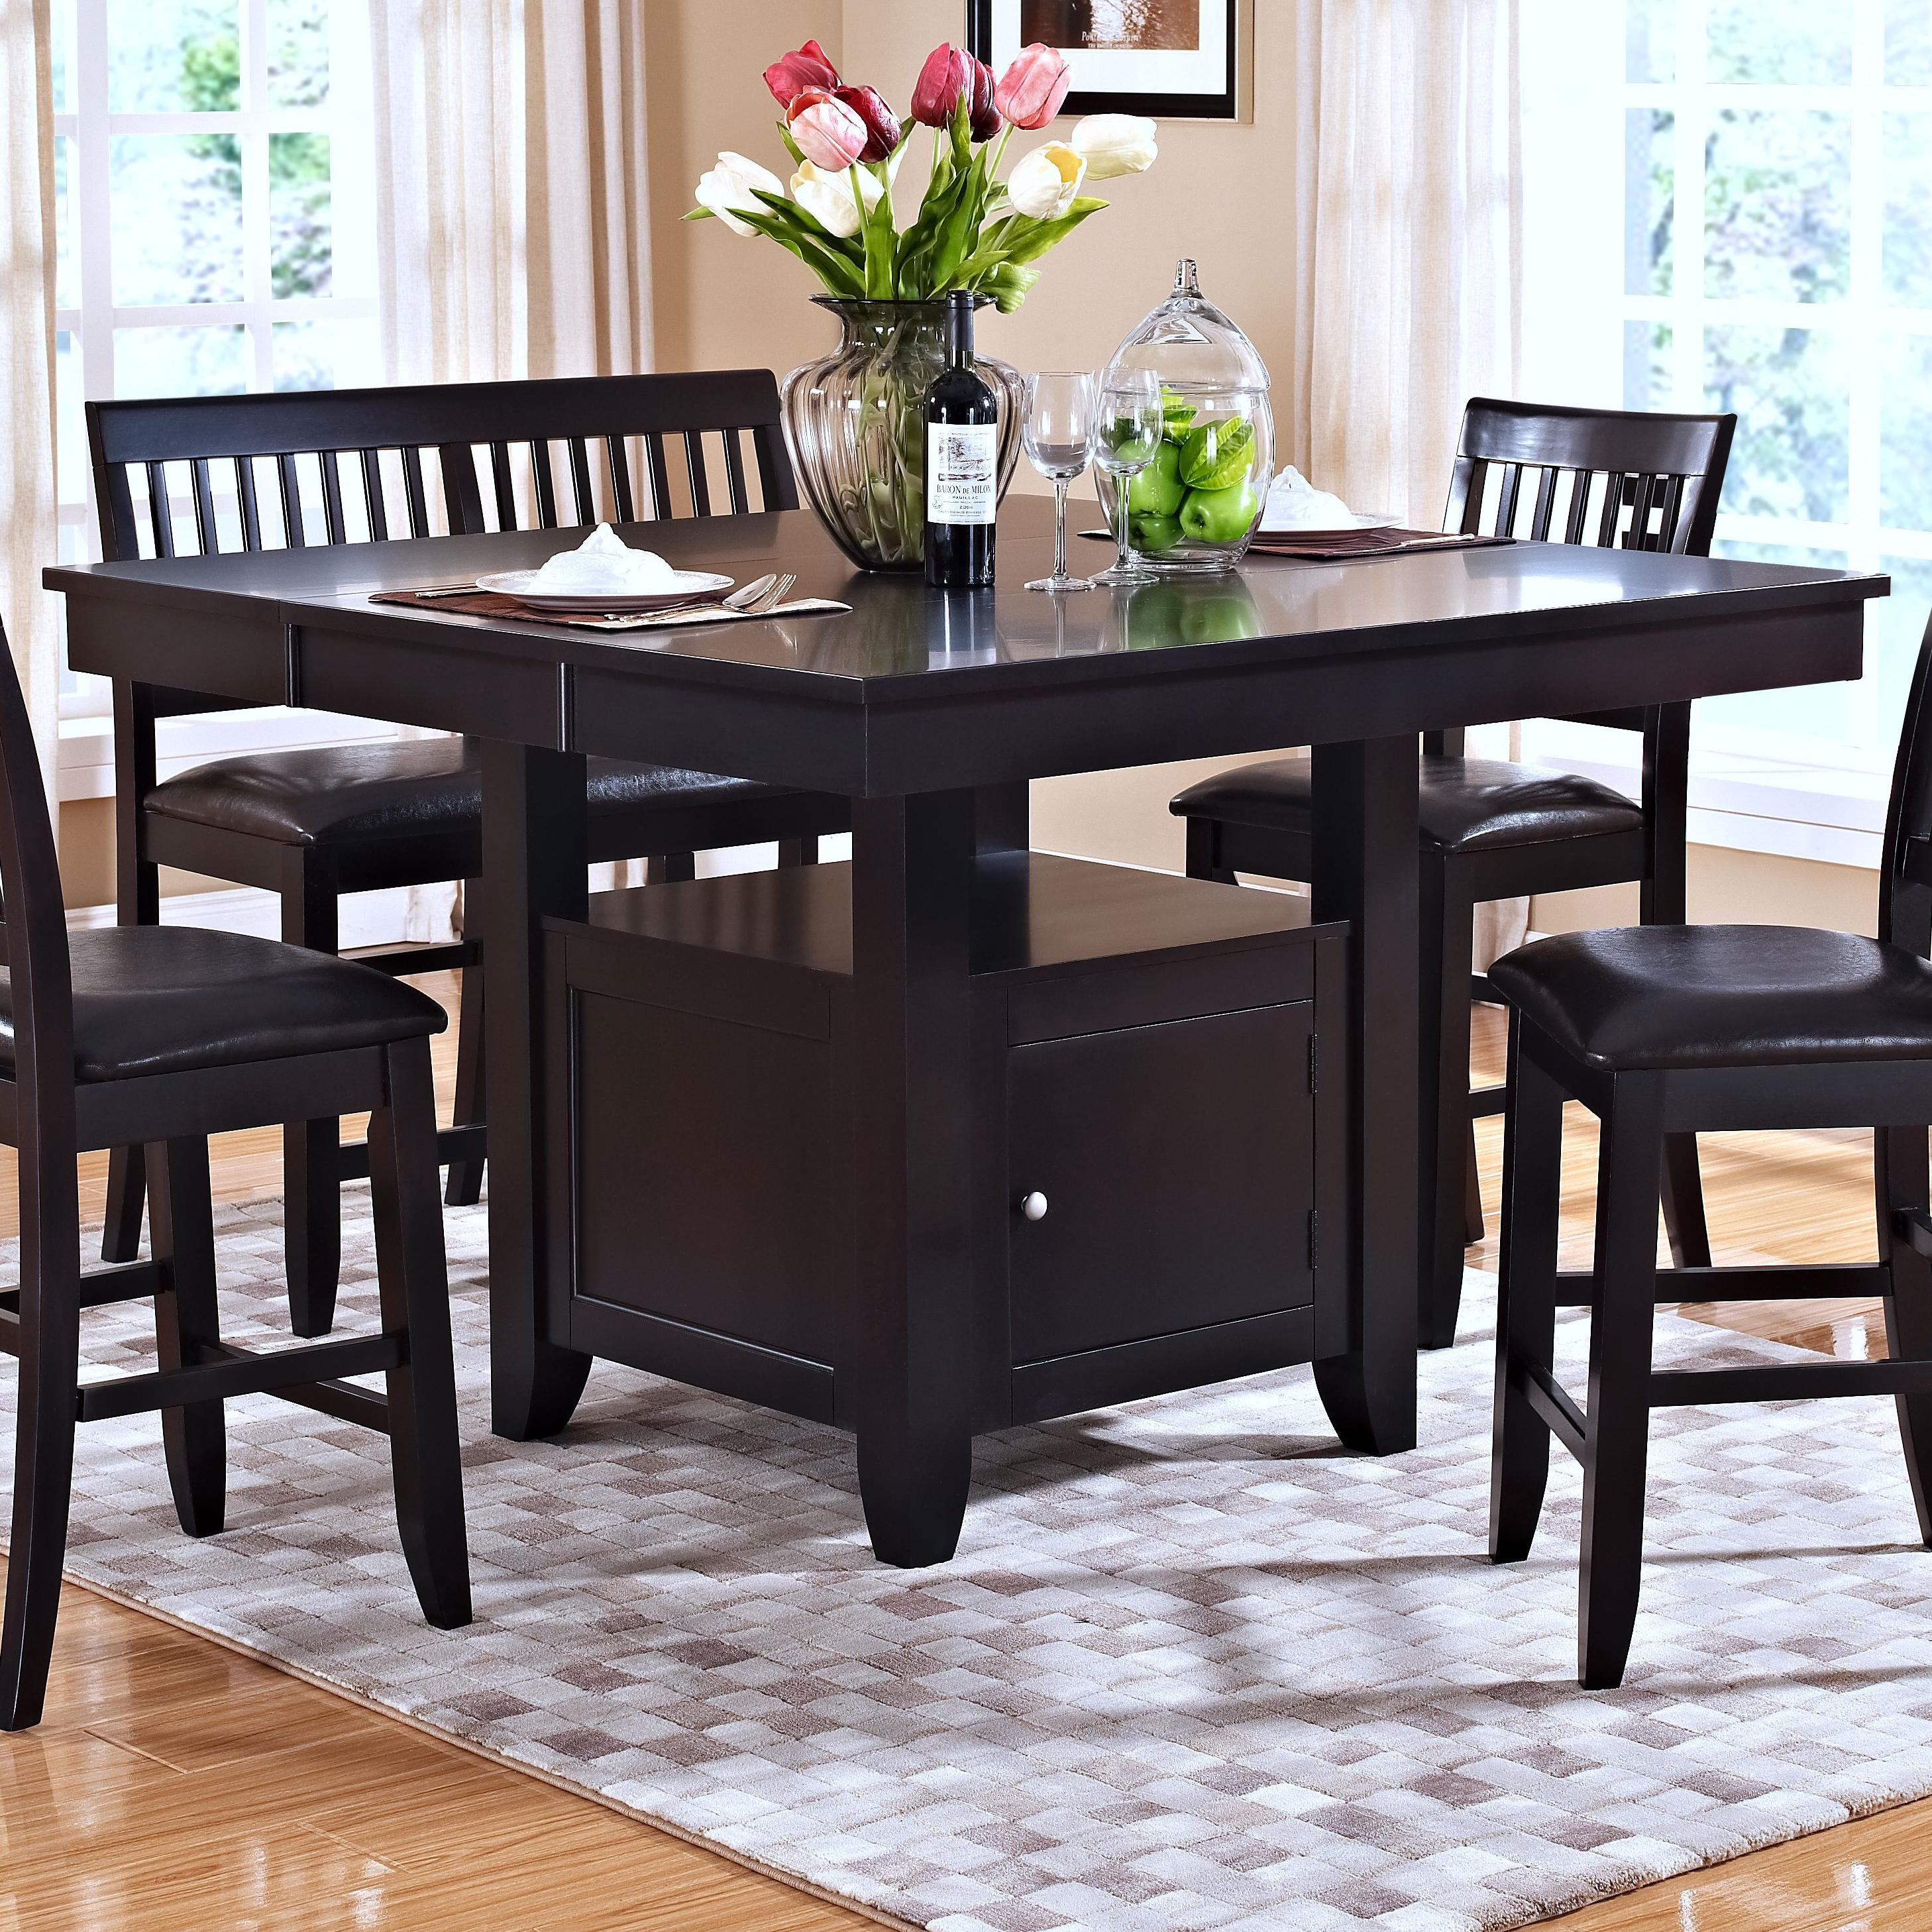 New Classic Kaylee Counter Height Table - Item Number: 45-102-10+B